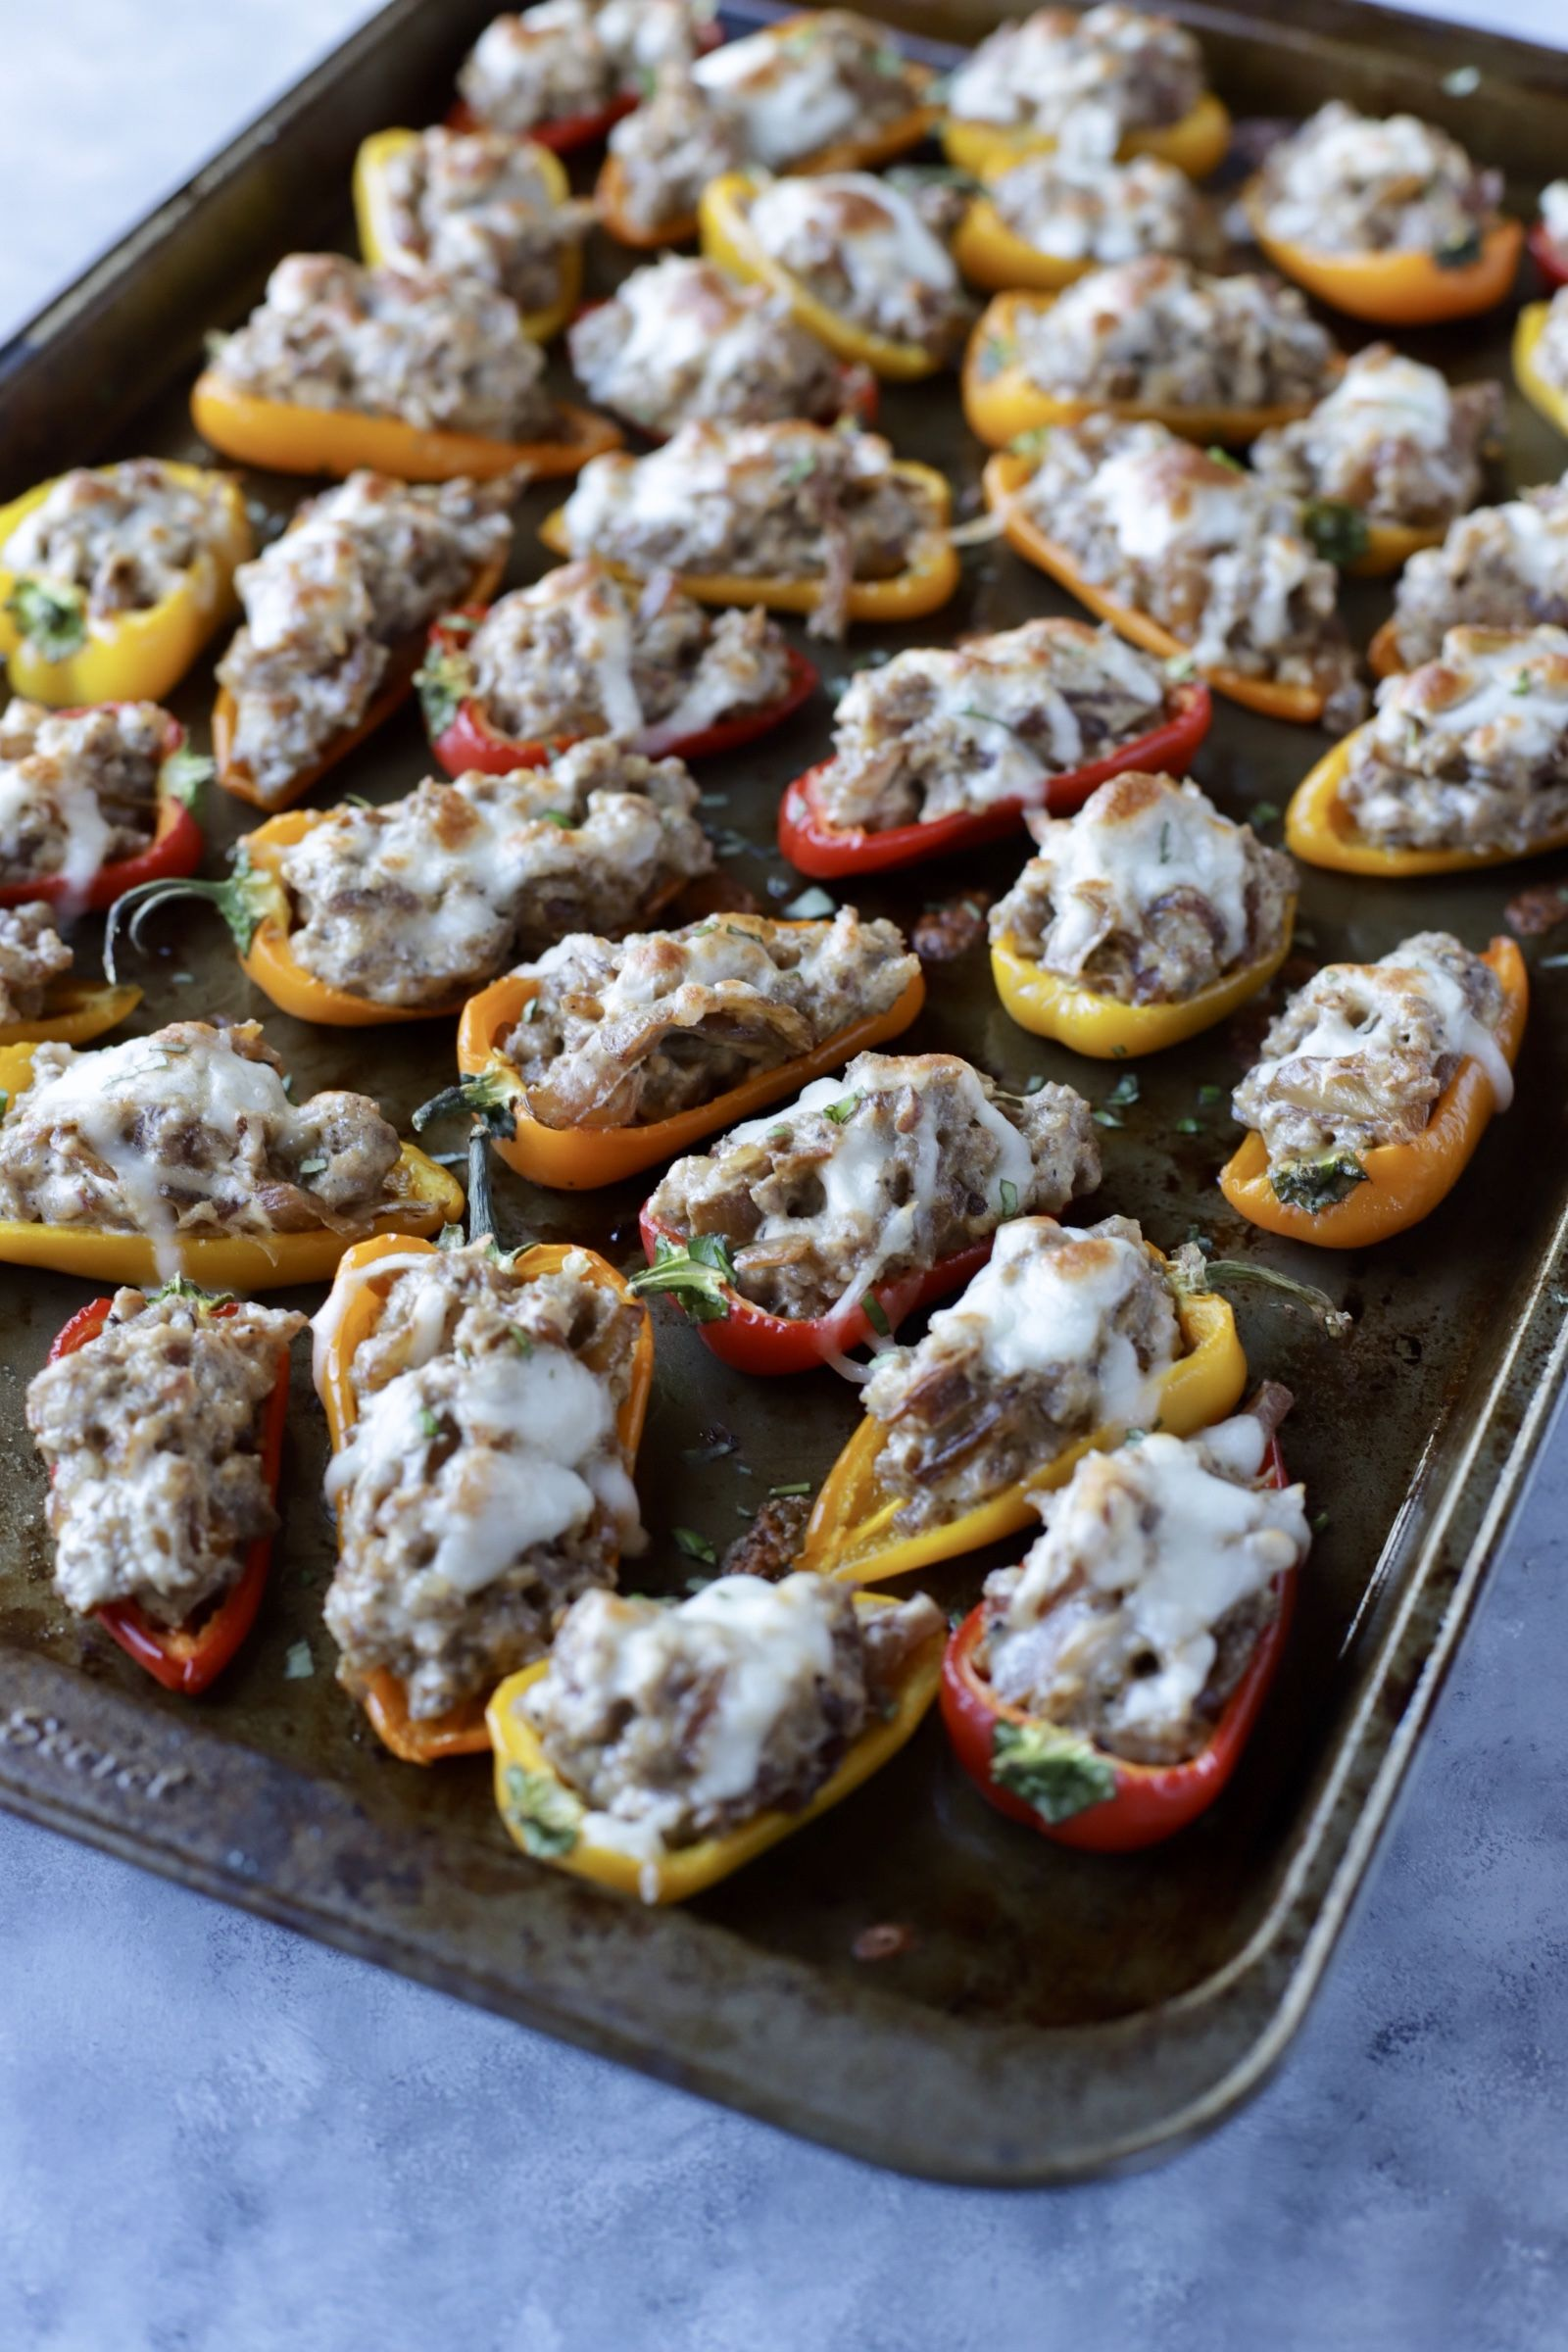 Sausage Caramelized Onion Cream Cheese Stuffed Peppers Recipe With Images Stuffed Peppers Cream Cheese Stuffed Peppers Caramelized Onions